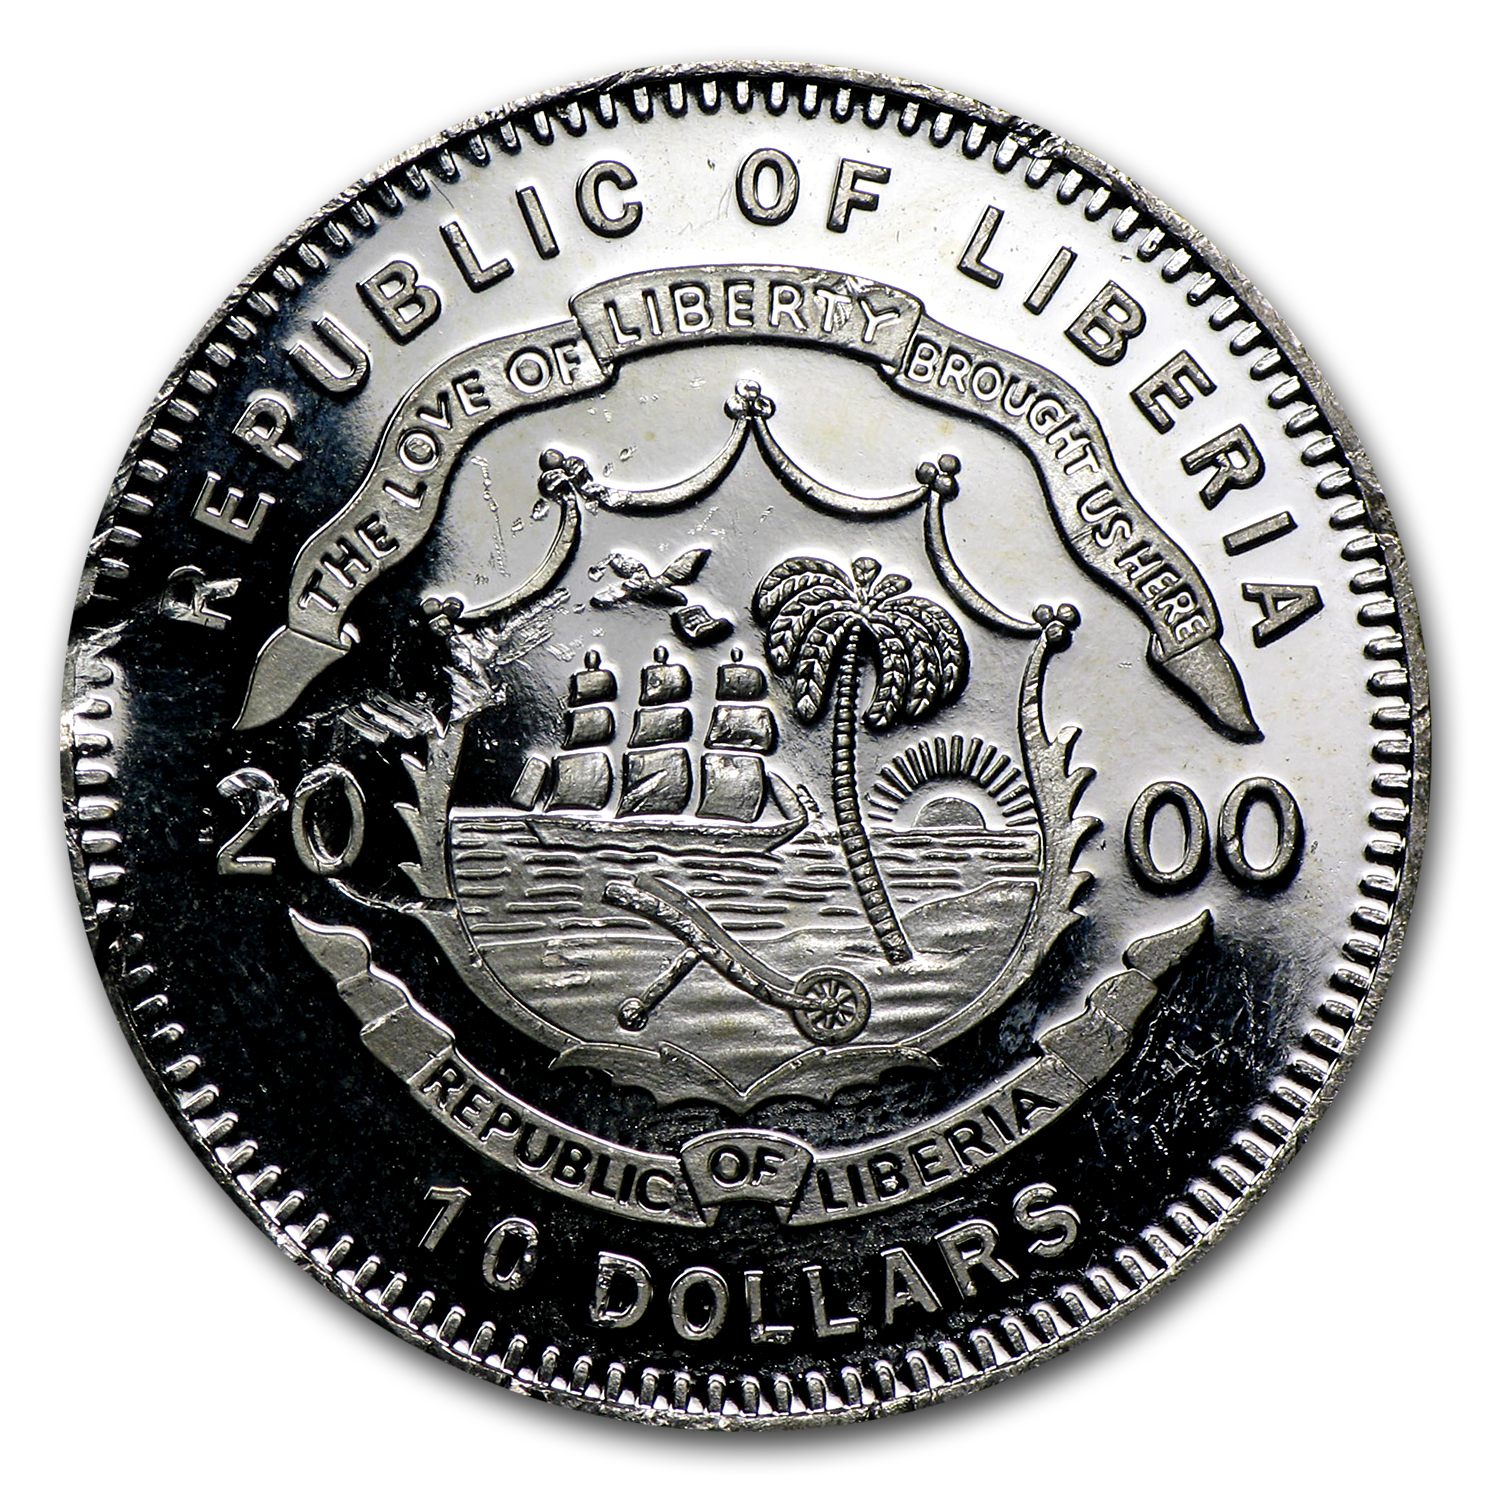 Liberia $10 Proof Silver Coins ASW .2746